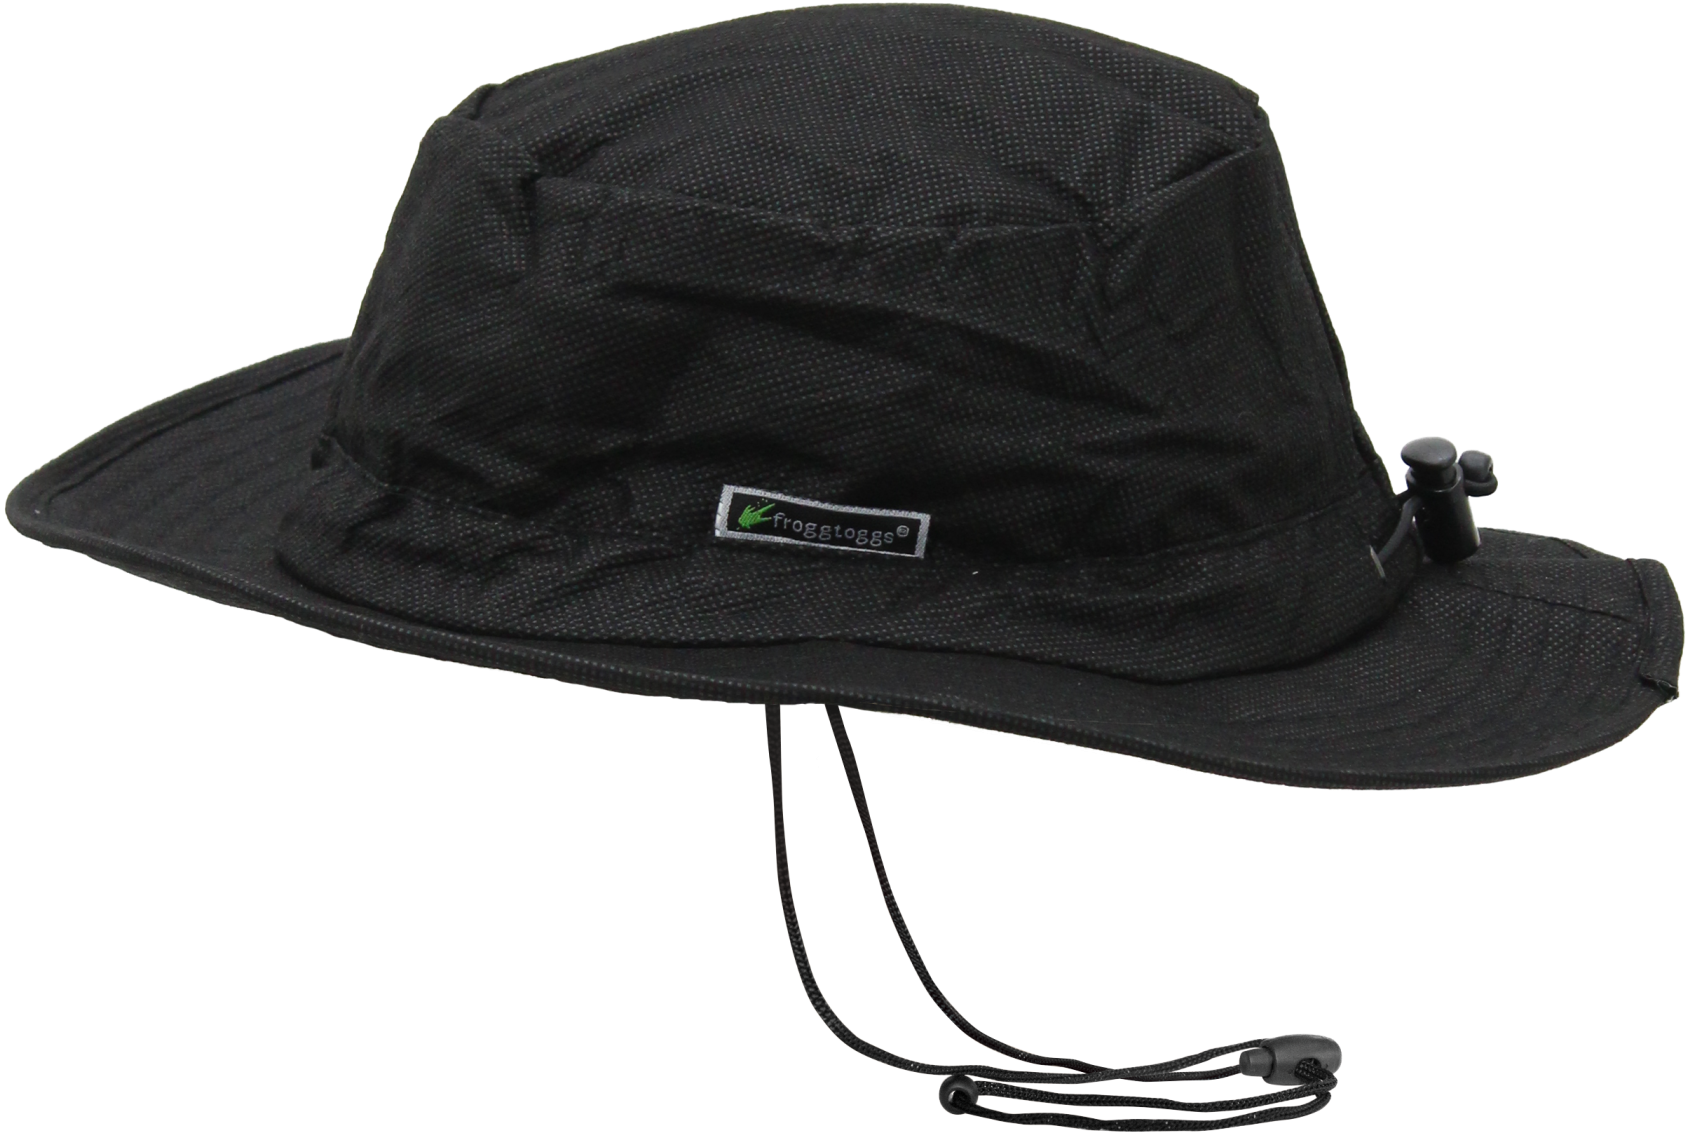 3a9eaef44eedaa Download HD Frogg Toggs Breathable Bucket Hat Transparent PNG Image ...